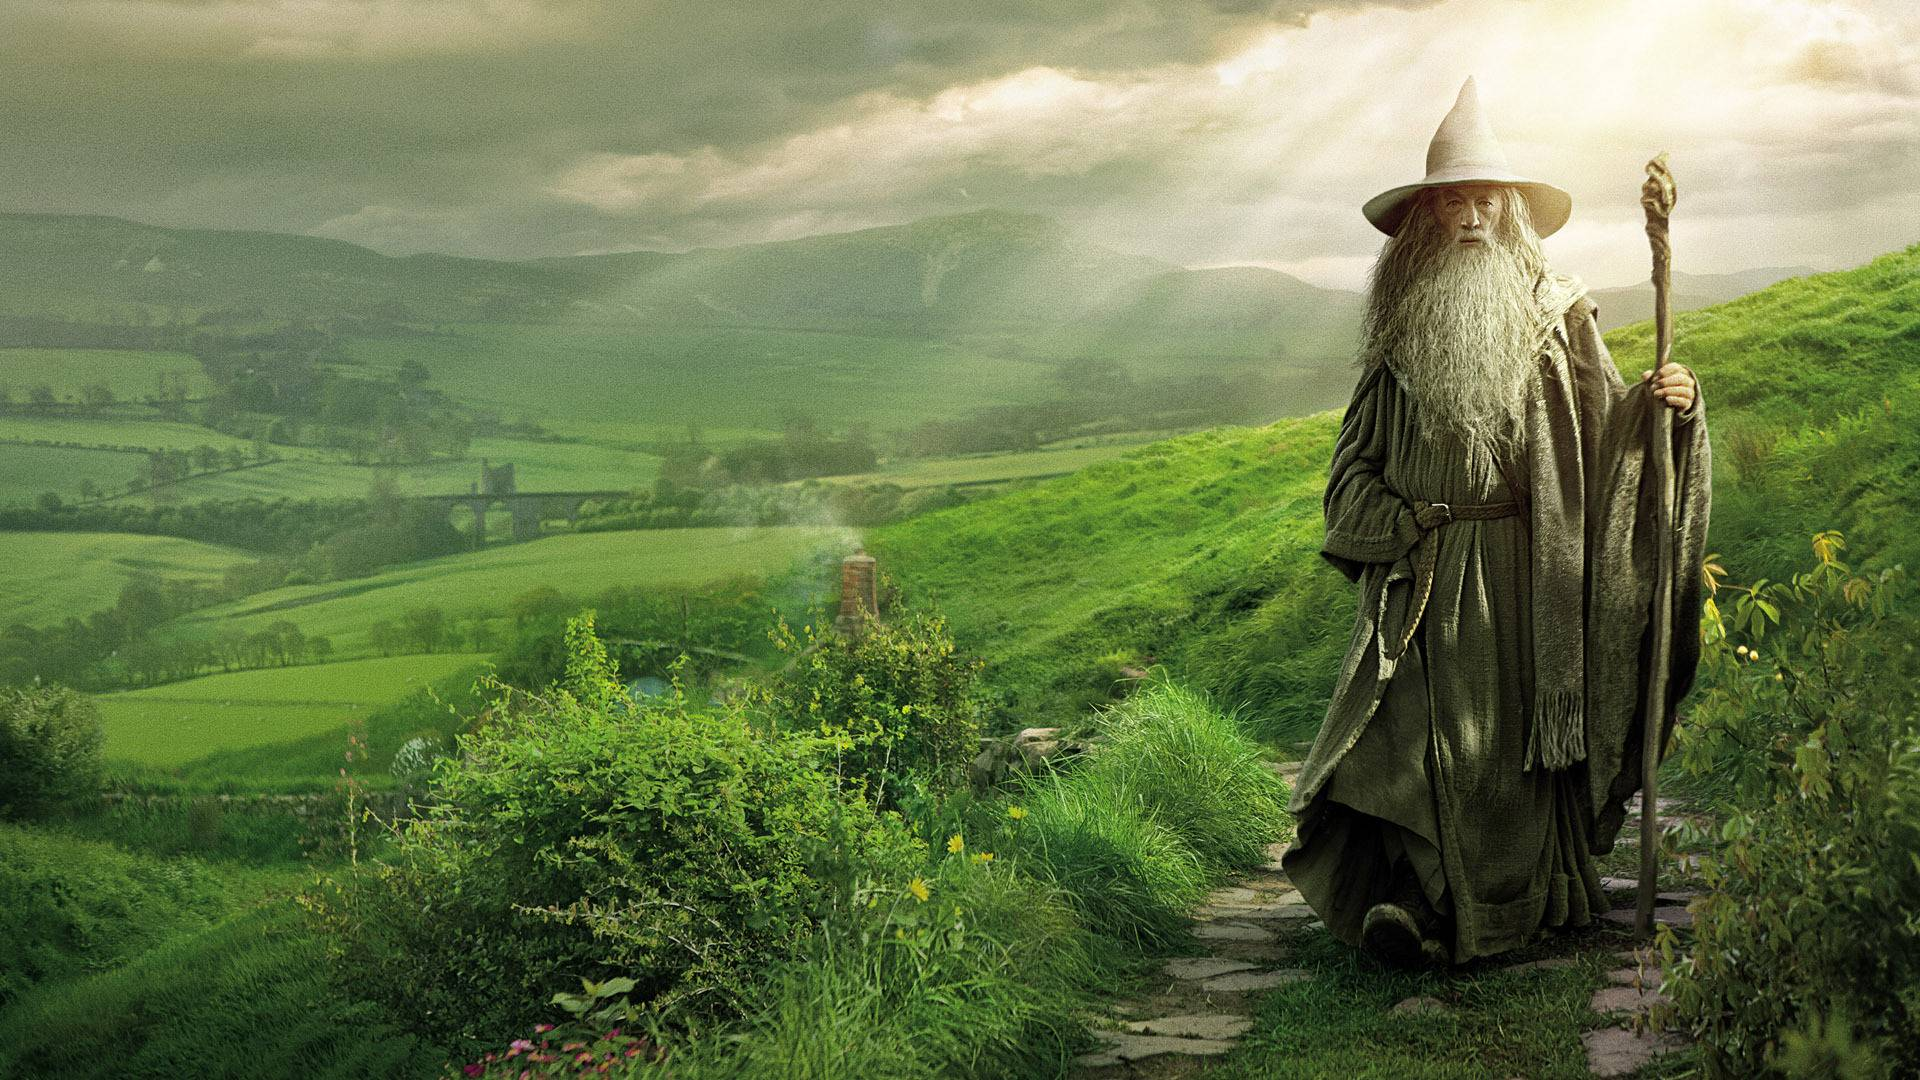 Gandalf Lord Of The Rings Wallpaper 40623452 Fanpop